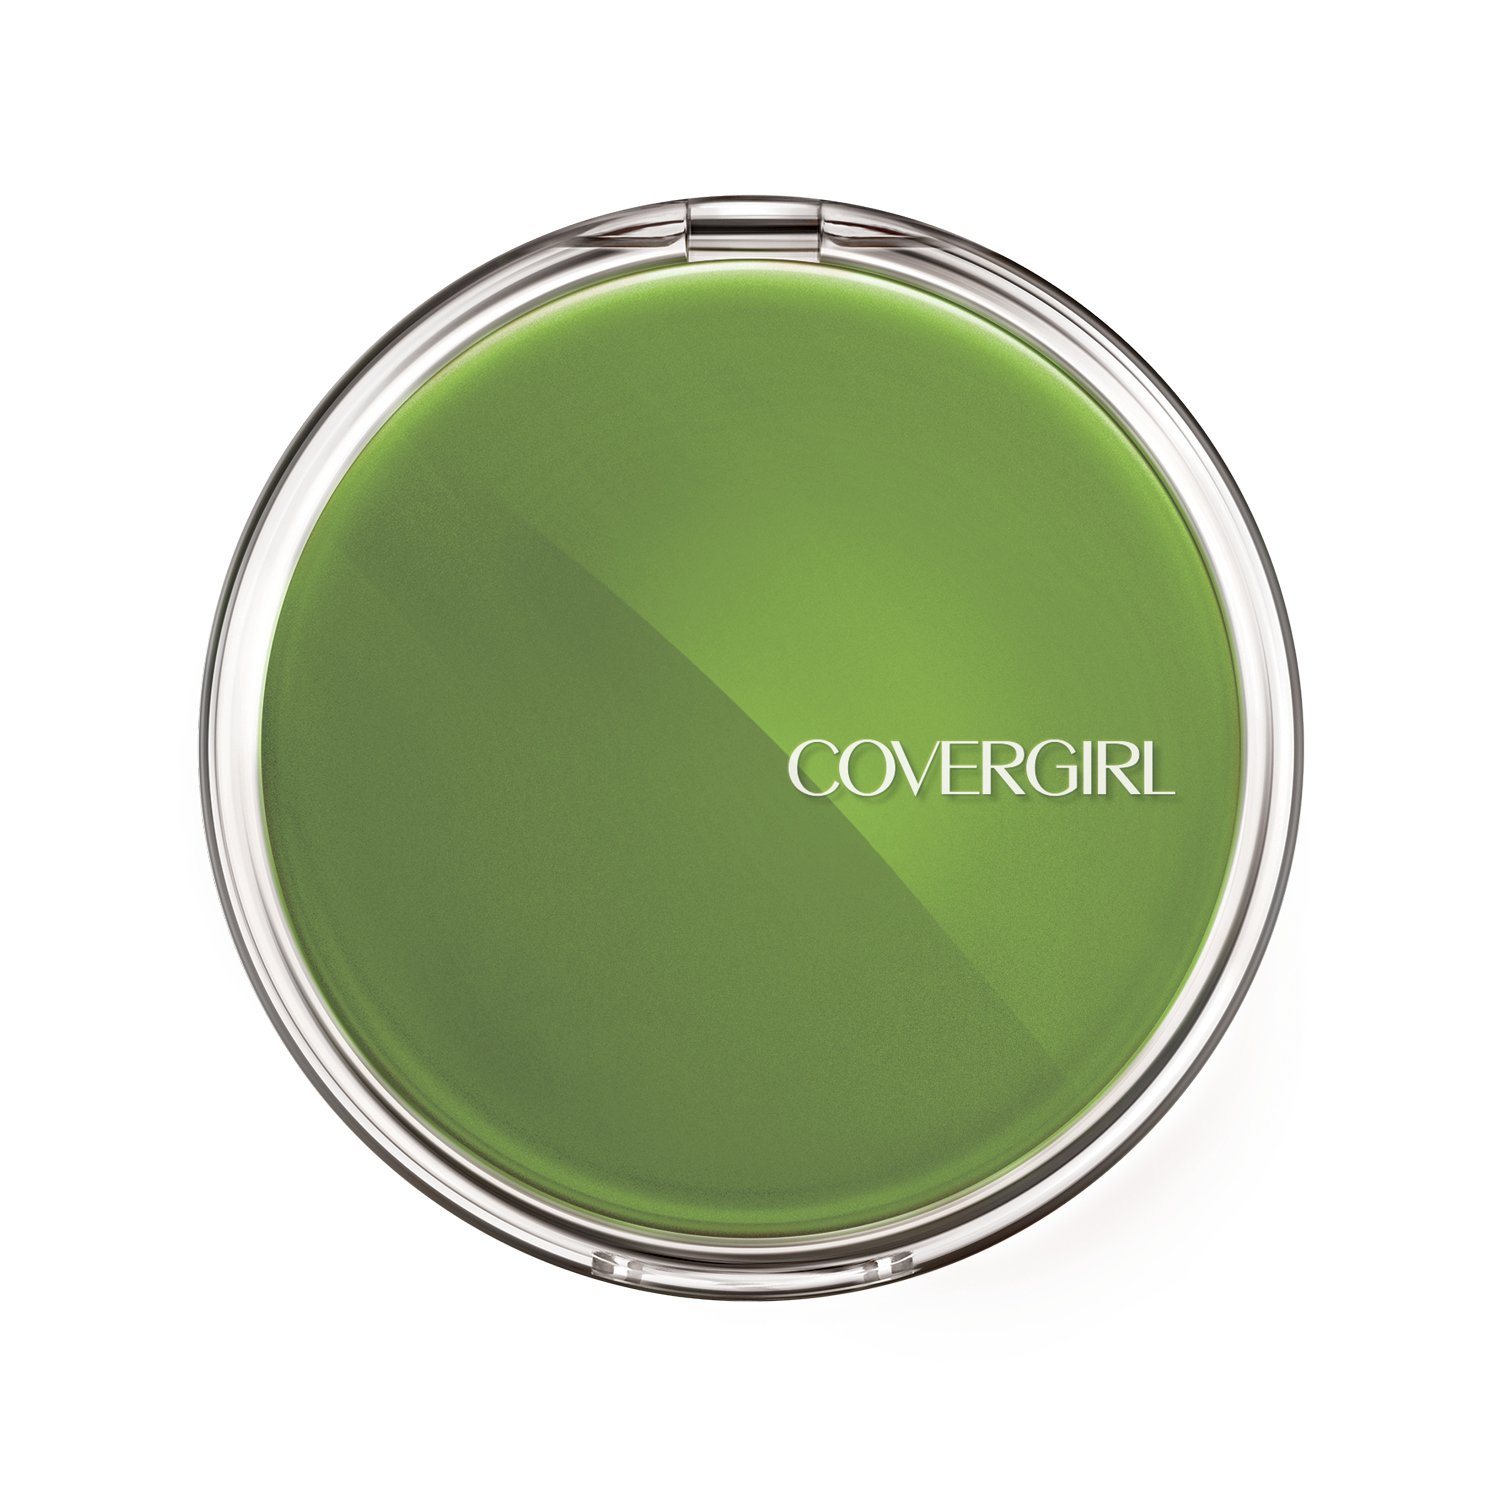 COVERGIRL Clean Sensitive Skin Pressed Powder Classic Tan 260, .35 oz, Old Version (packaging may vary)